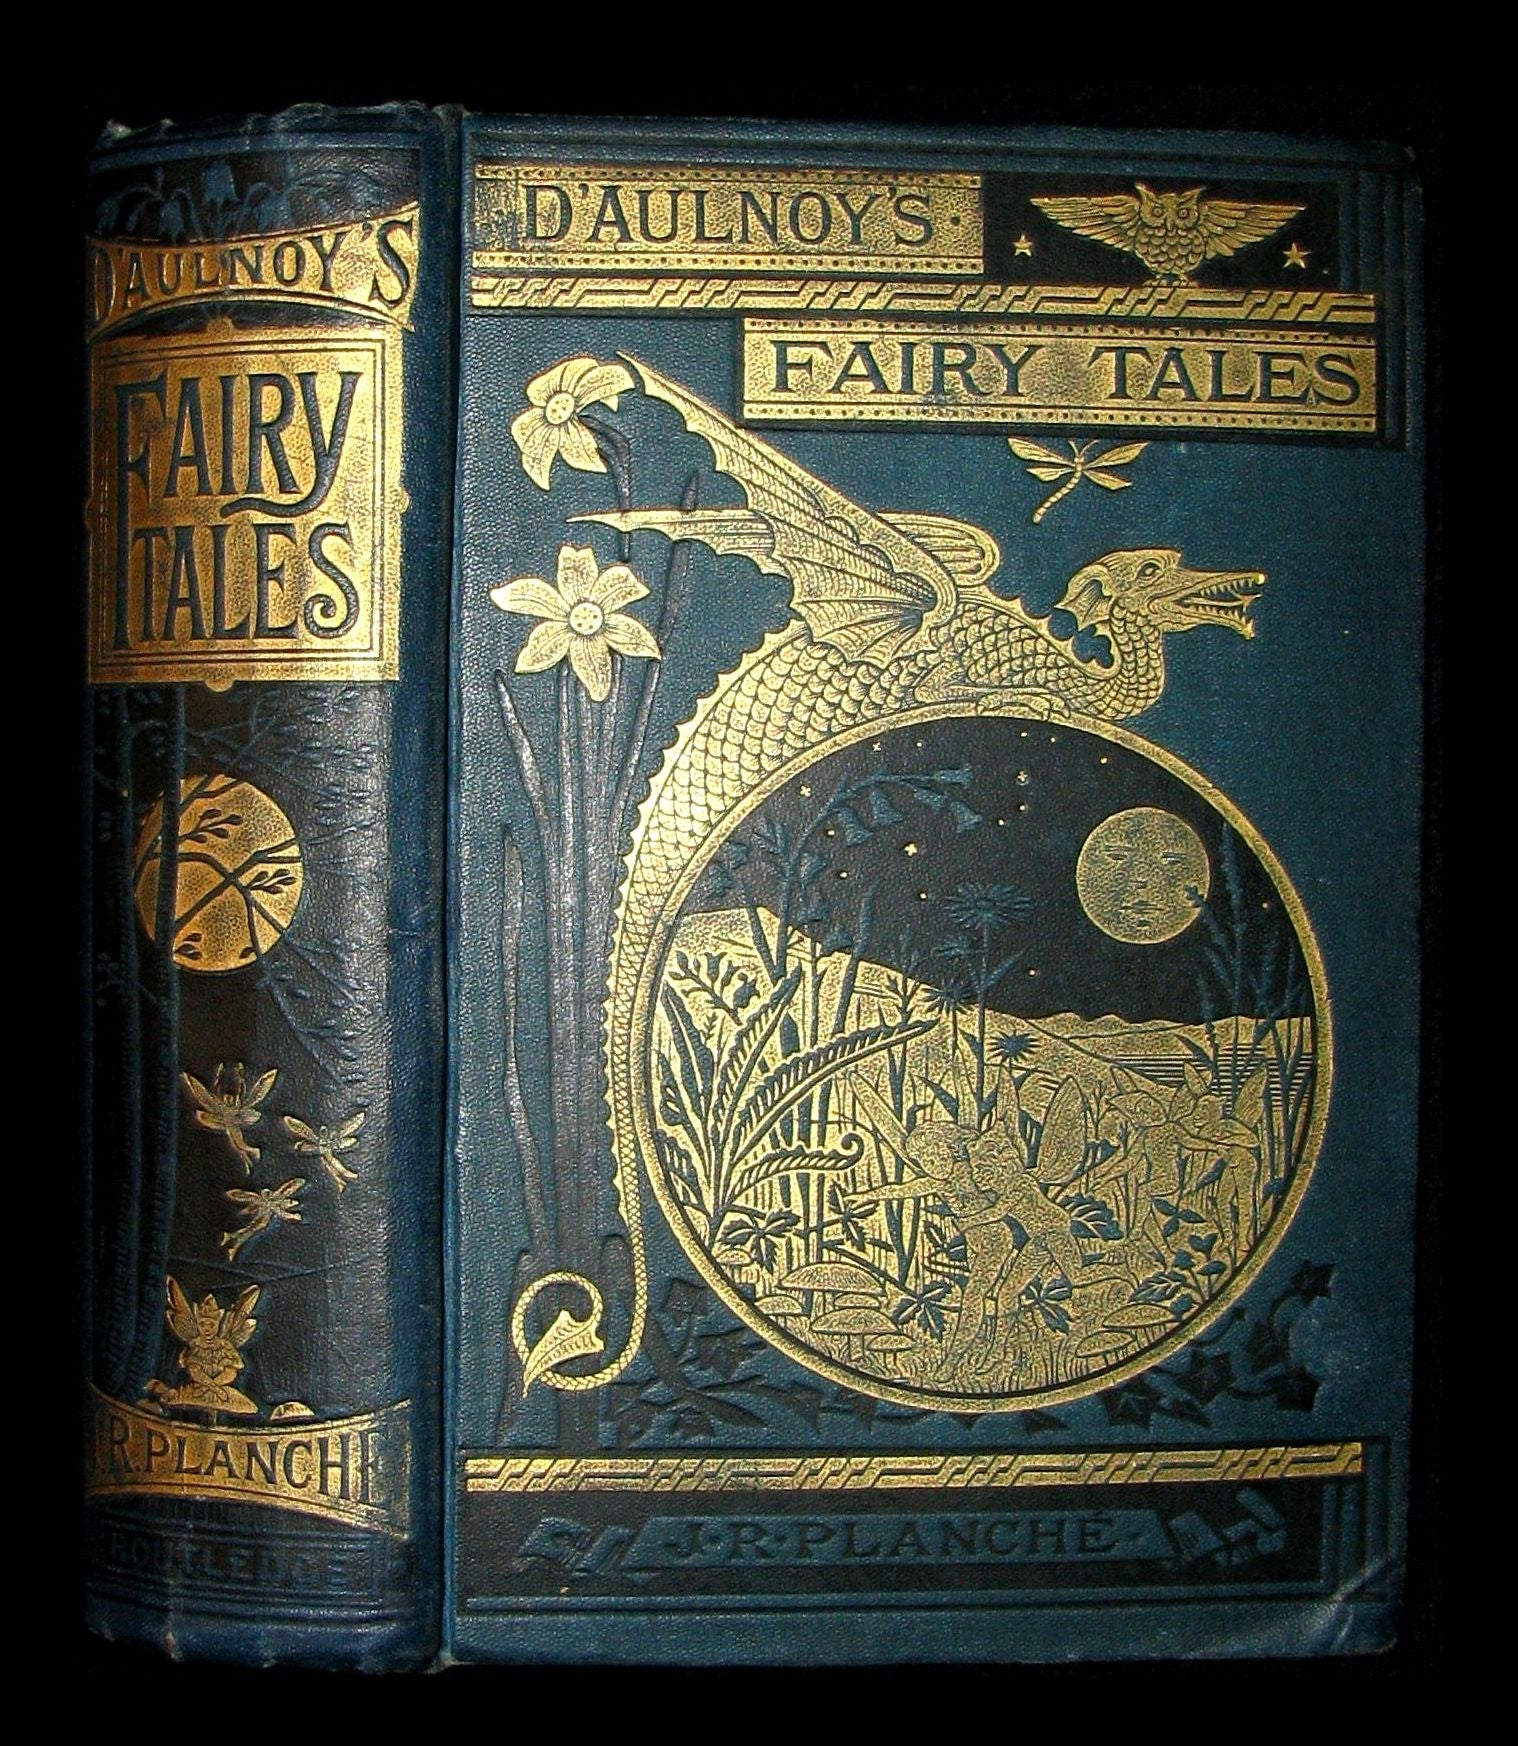 1881 Rare Victorian Book - Fairy Tales by The Countess d'Aulnoy